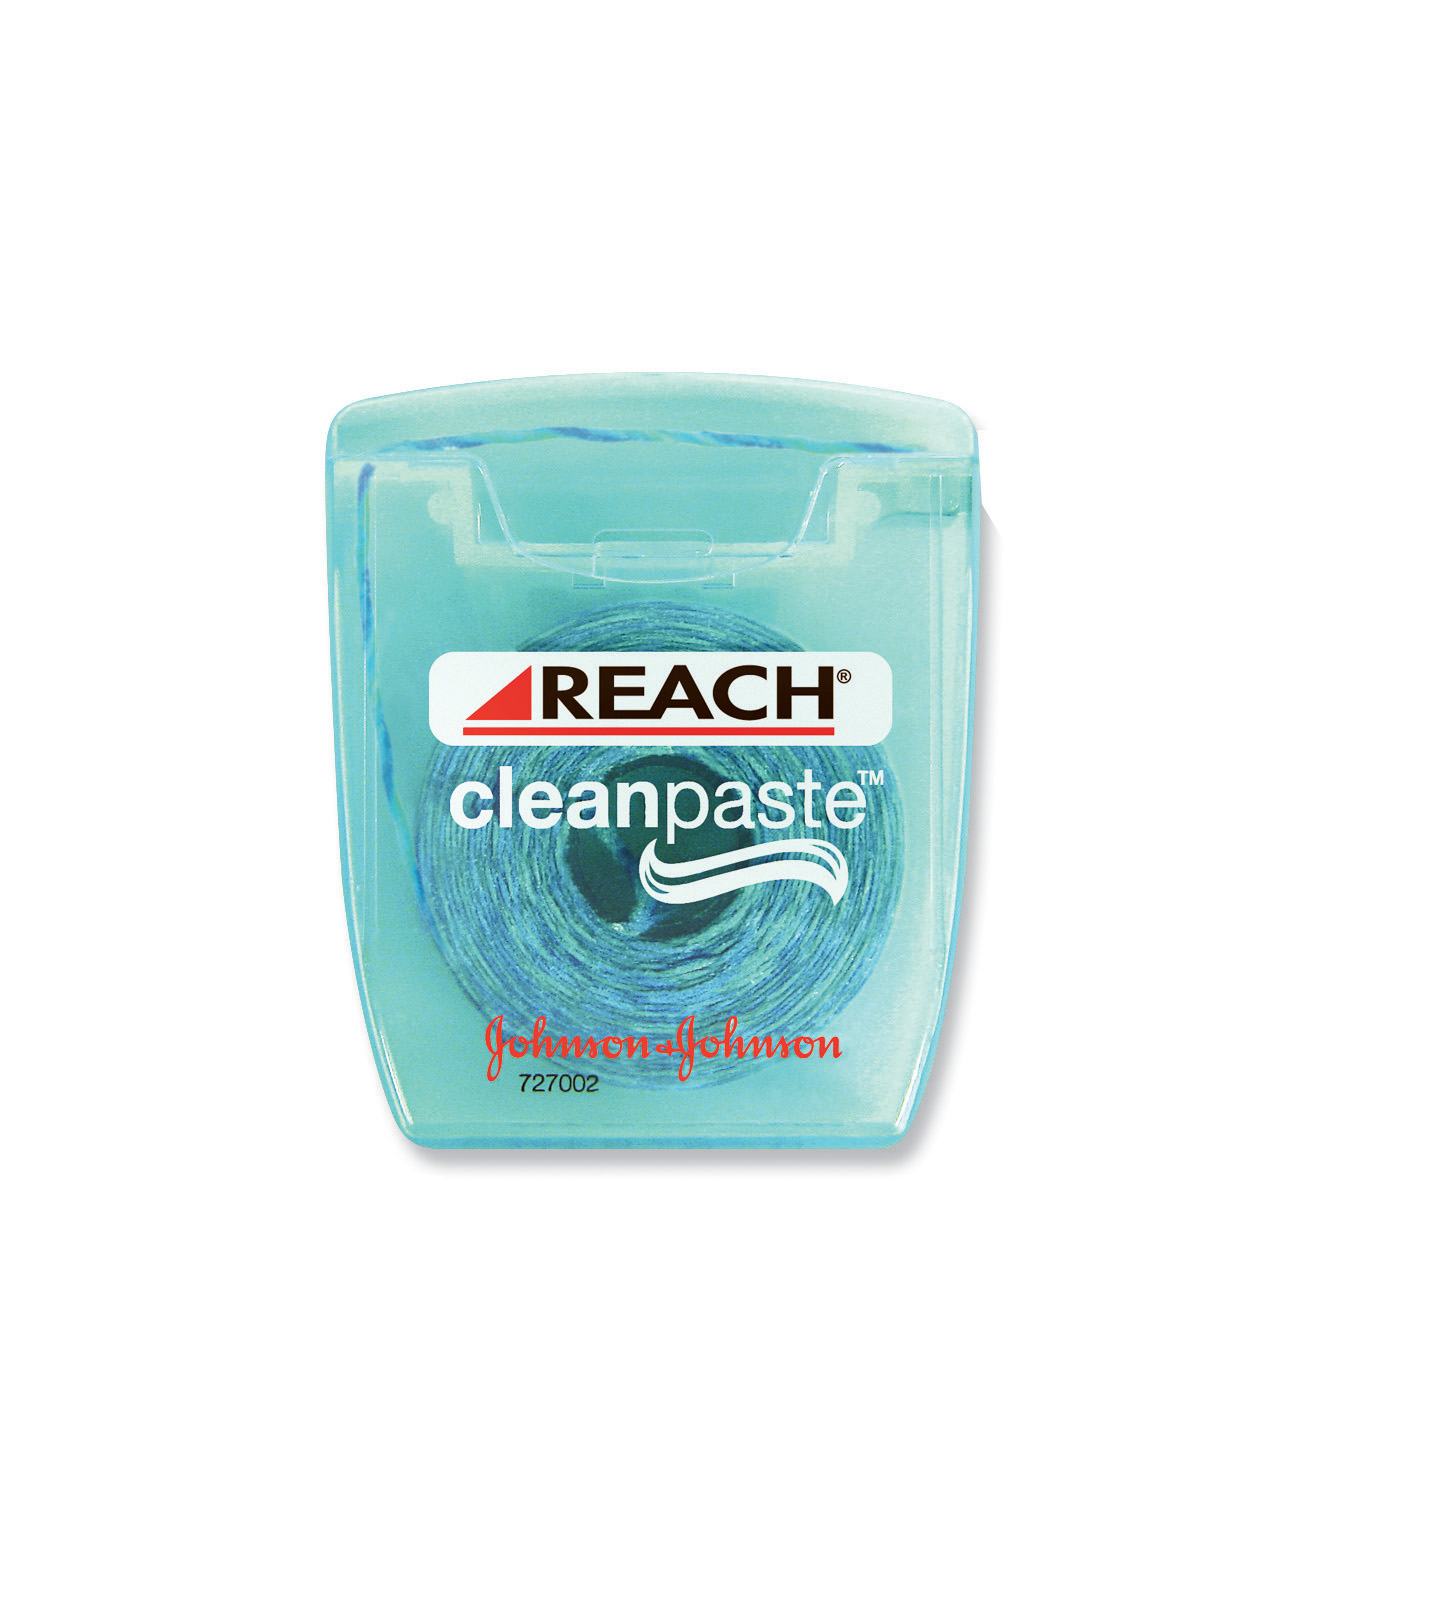 REACH Cleanpaste Dental Floss